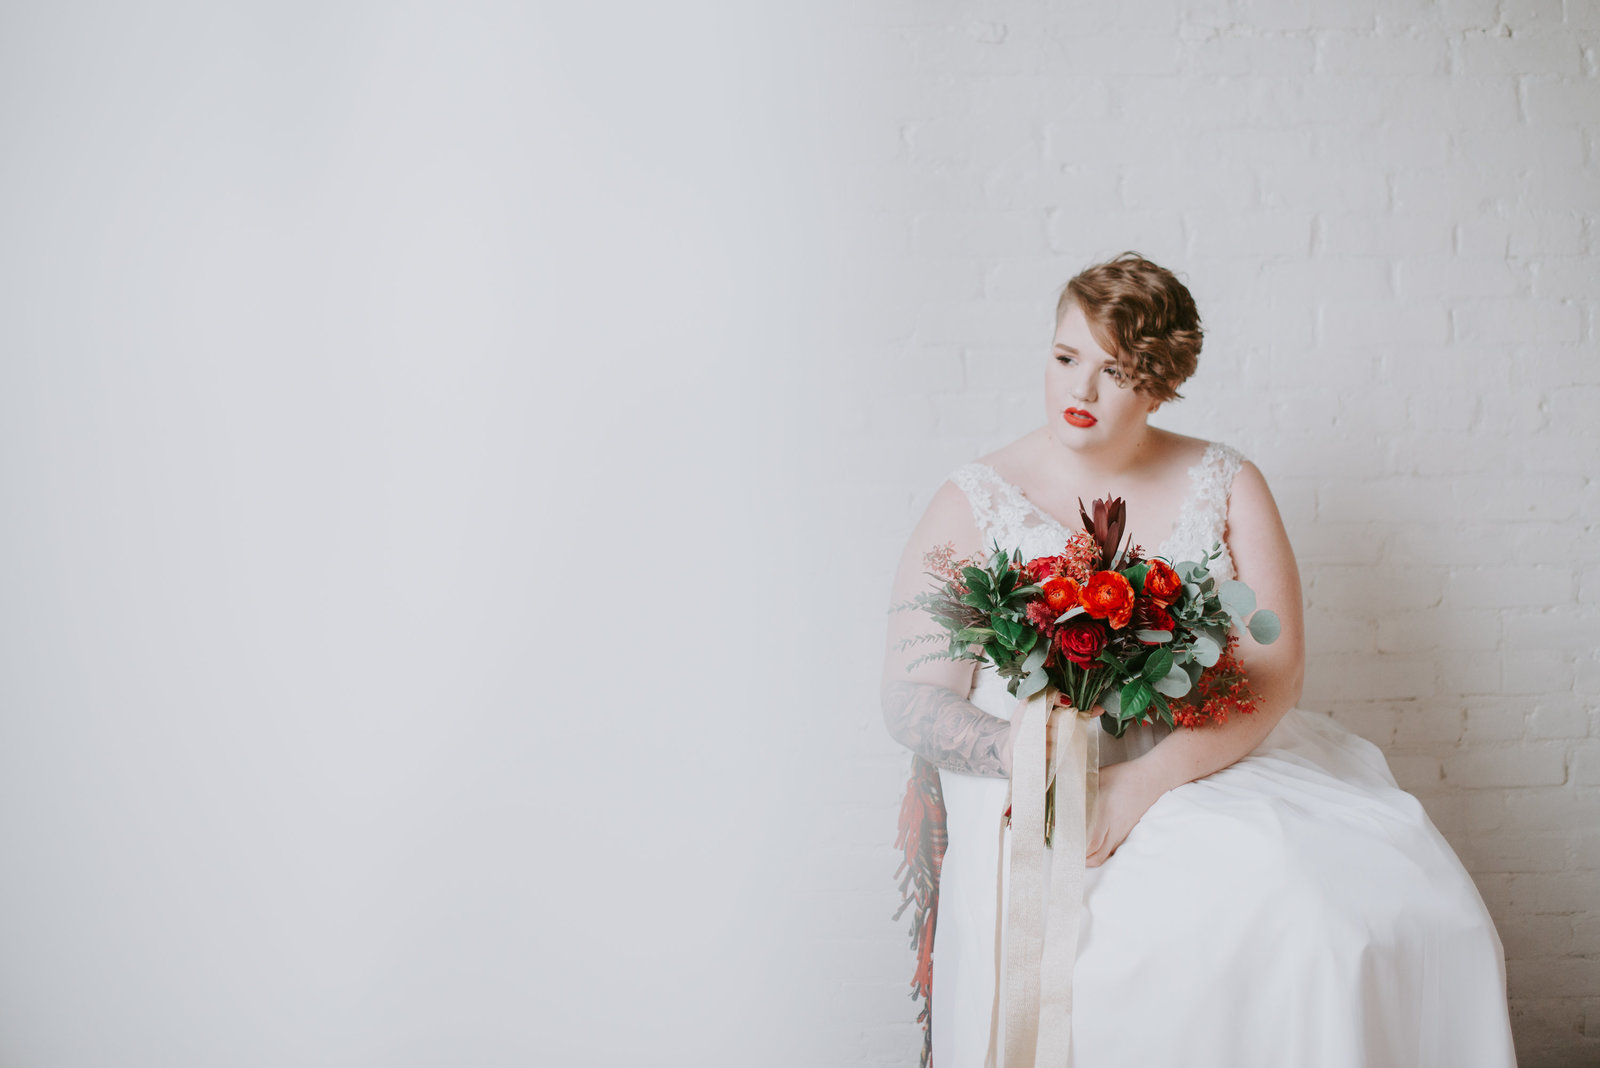 Queer Wedding Photographer